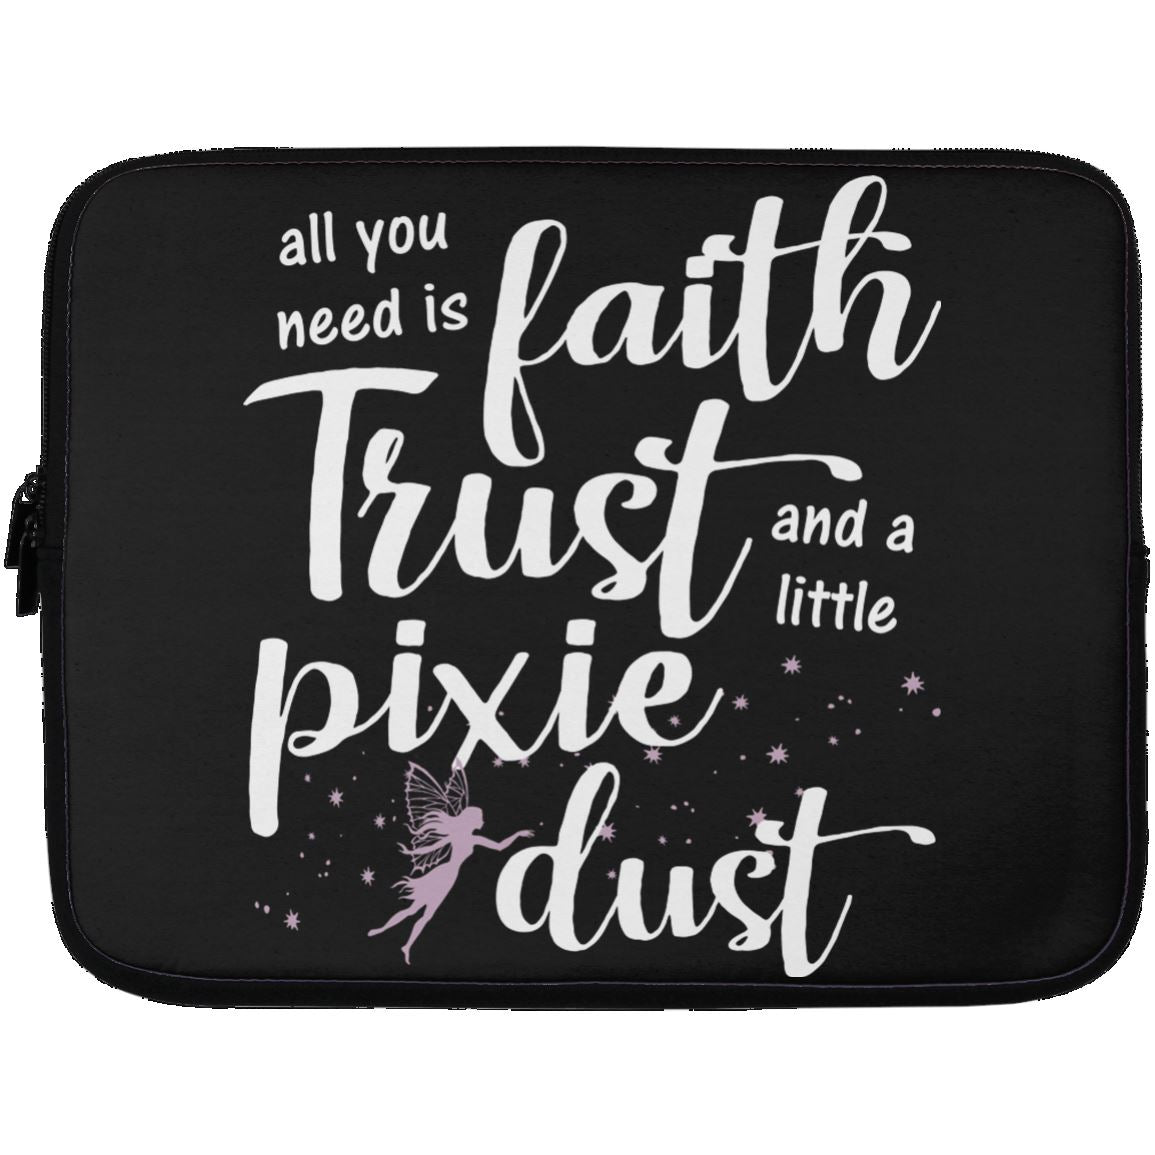 Pixie Dust Fairy Laptop Sleeve Apparel Laptop Sleeve - 13 inch Black One Size